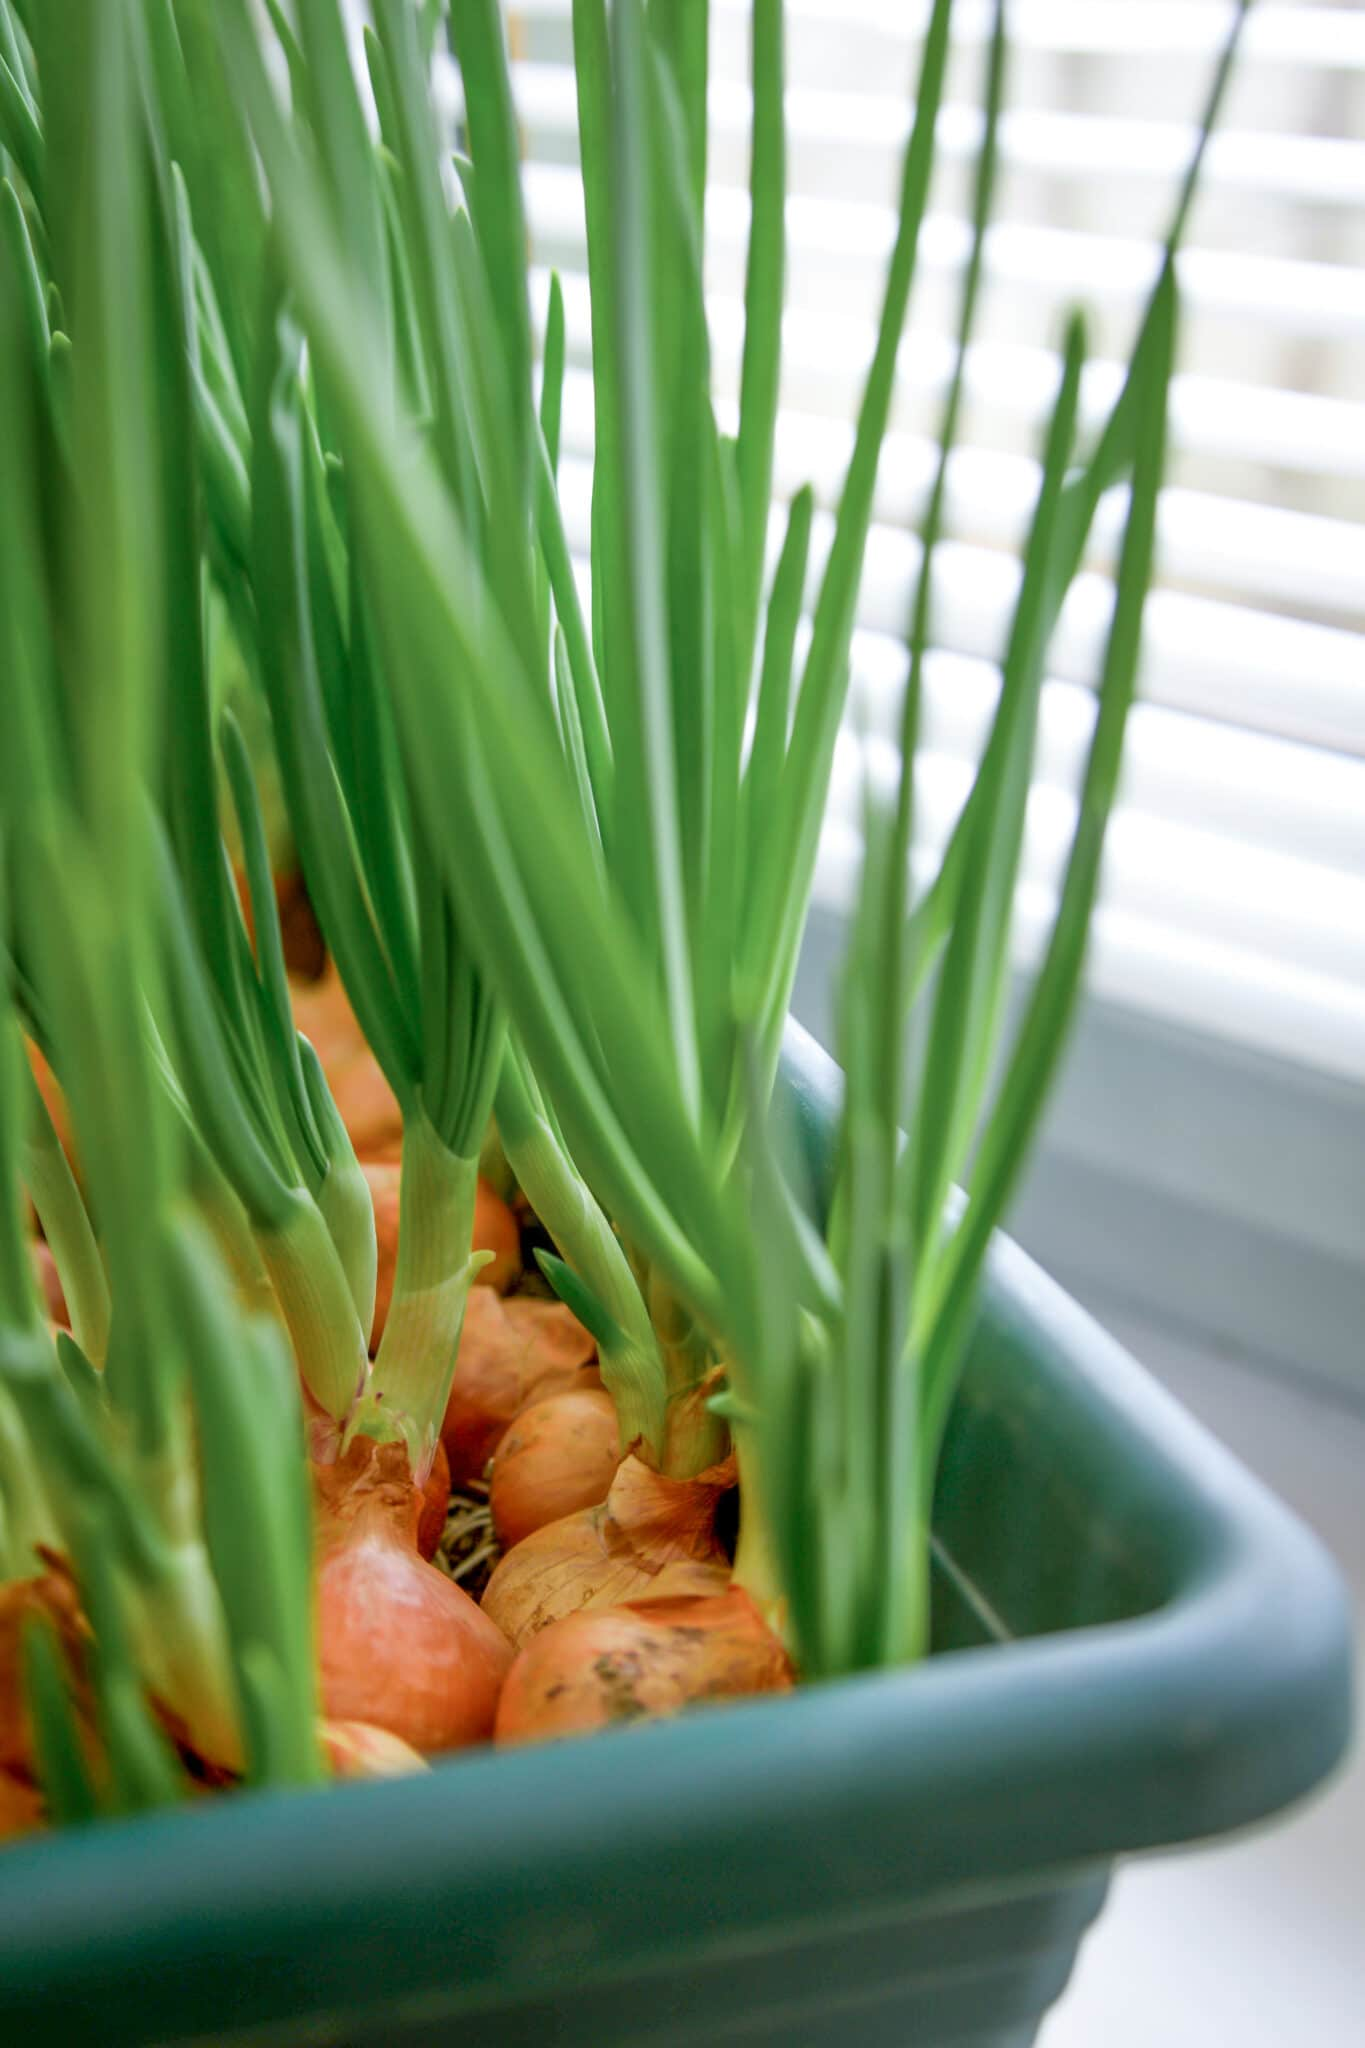 Growing onions in a plastic tub in front of a sunny window.